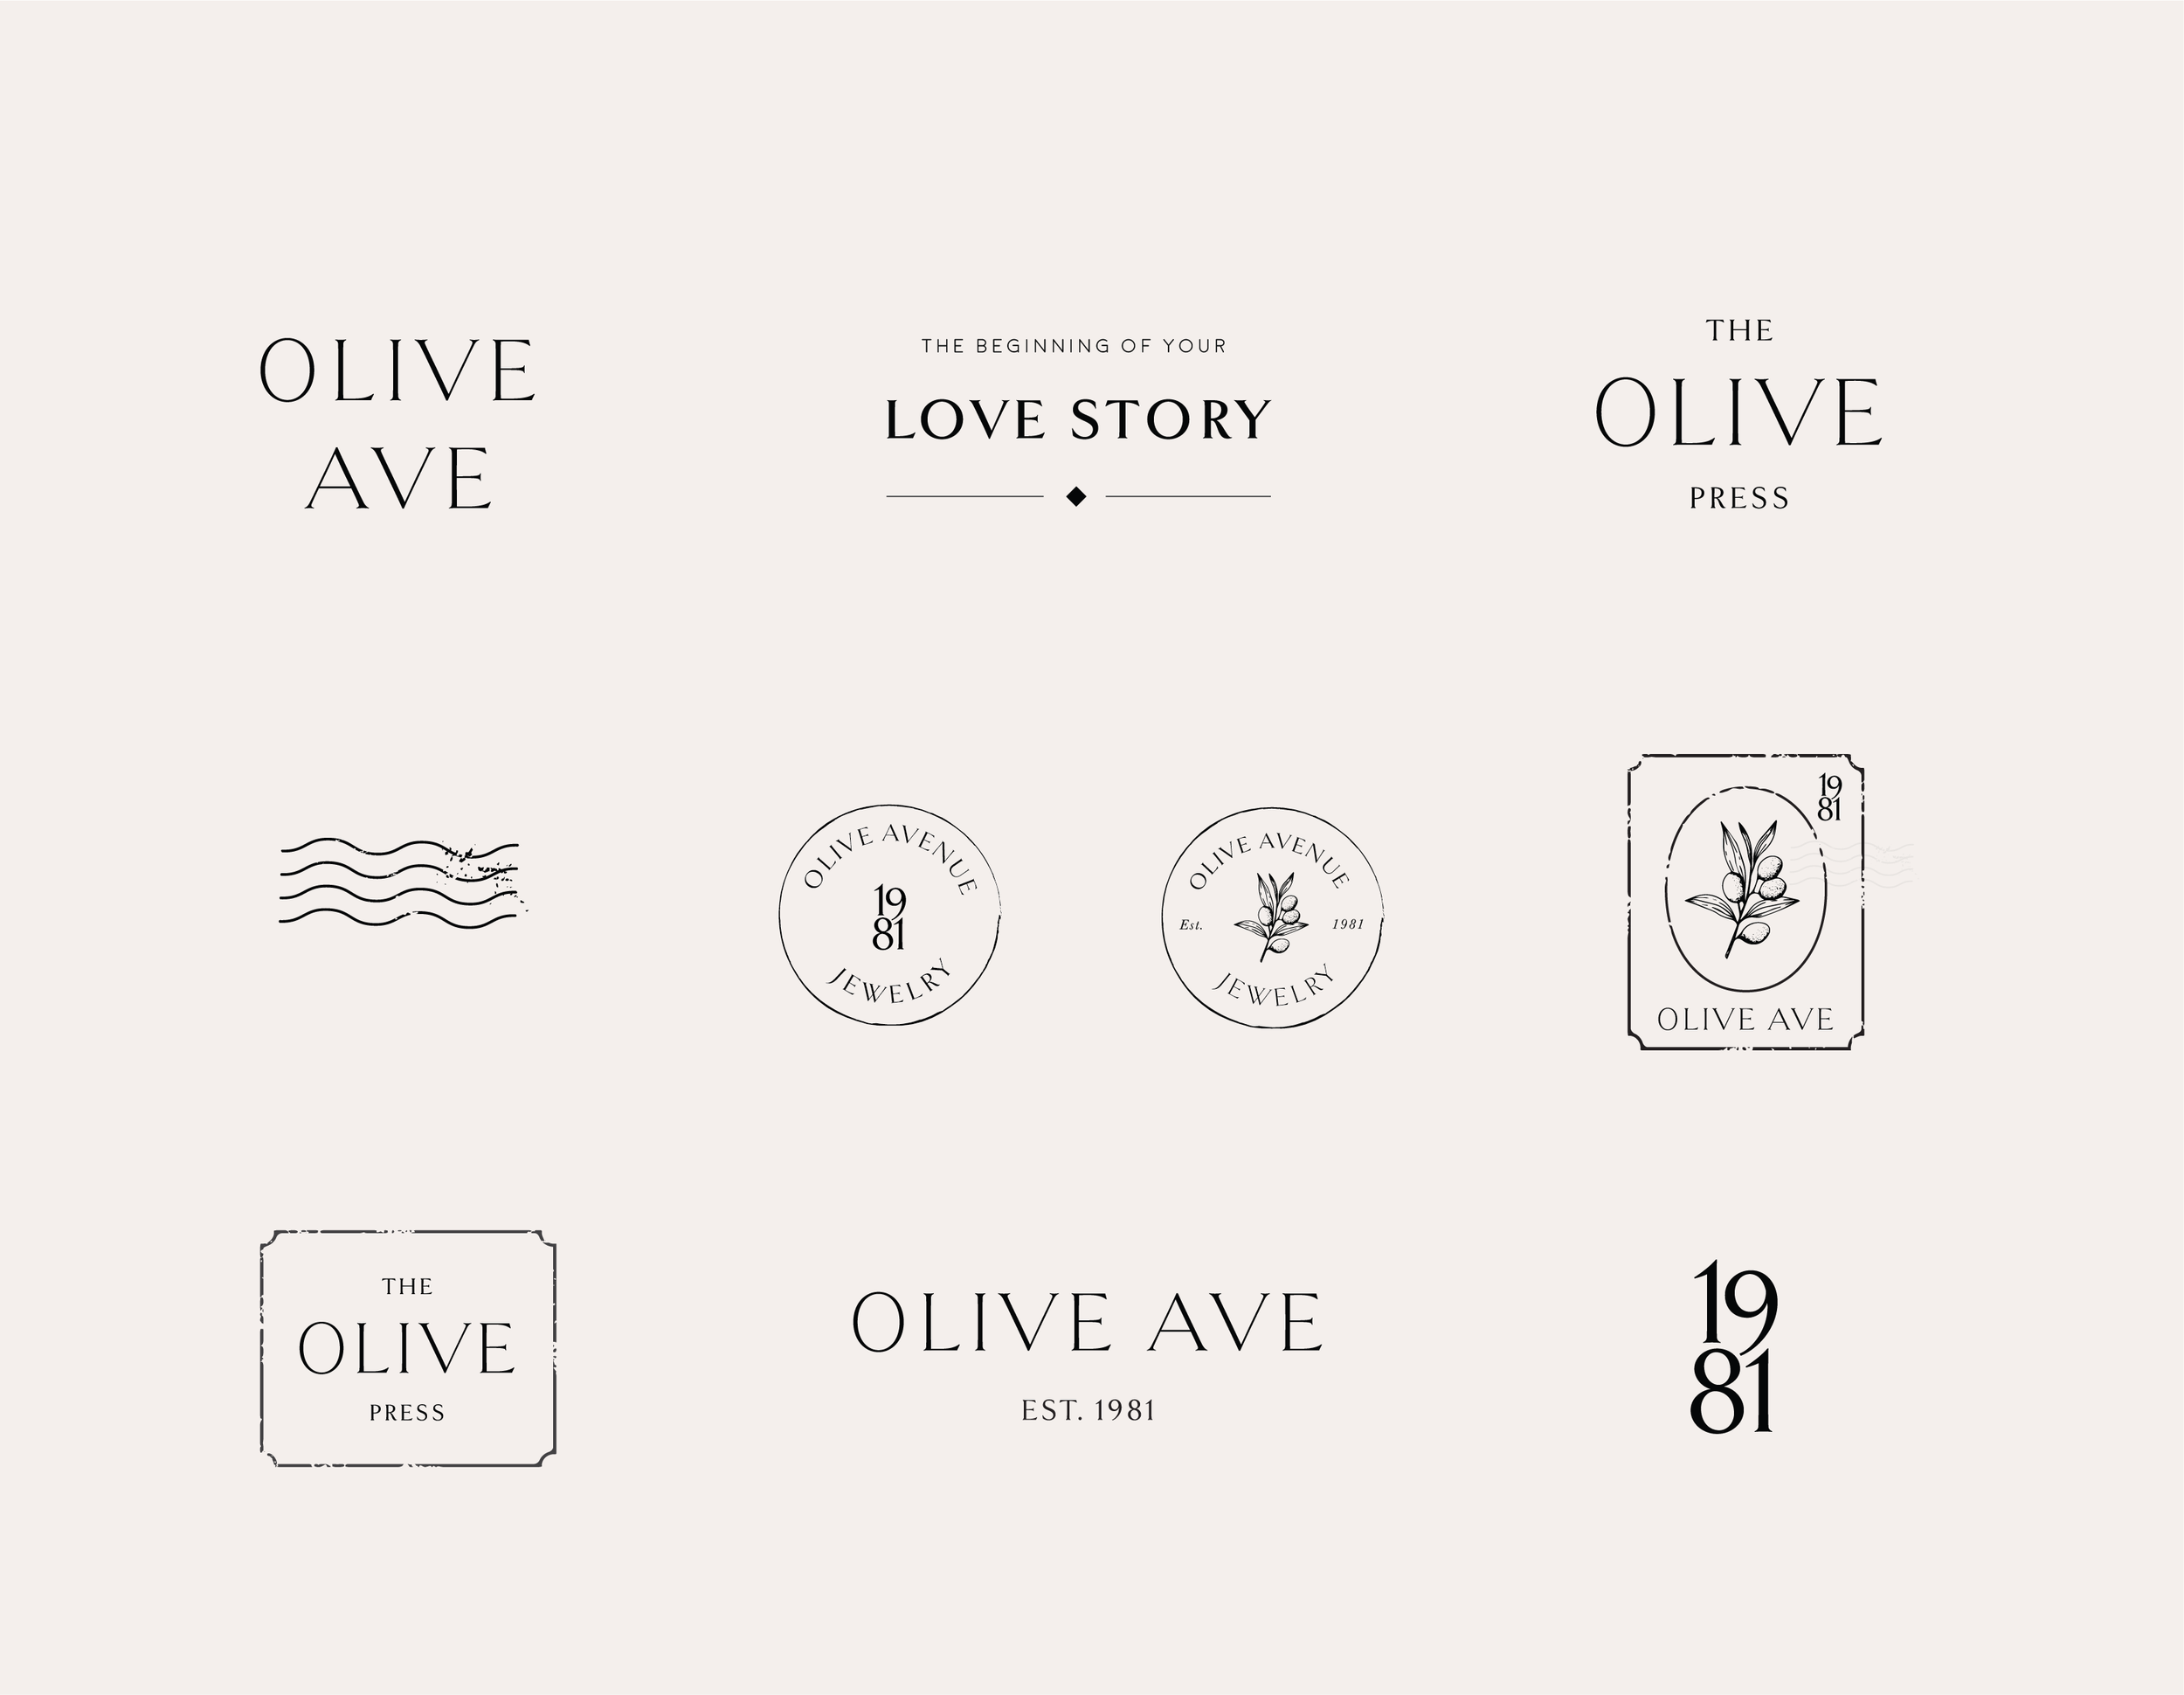 Olive ave5.png